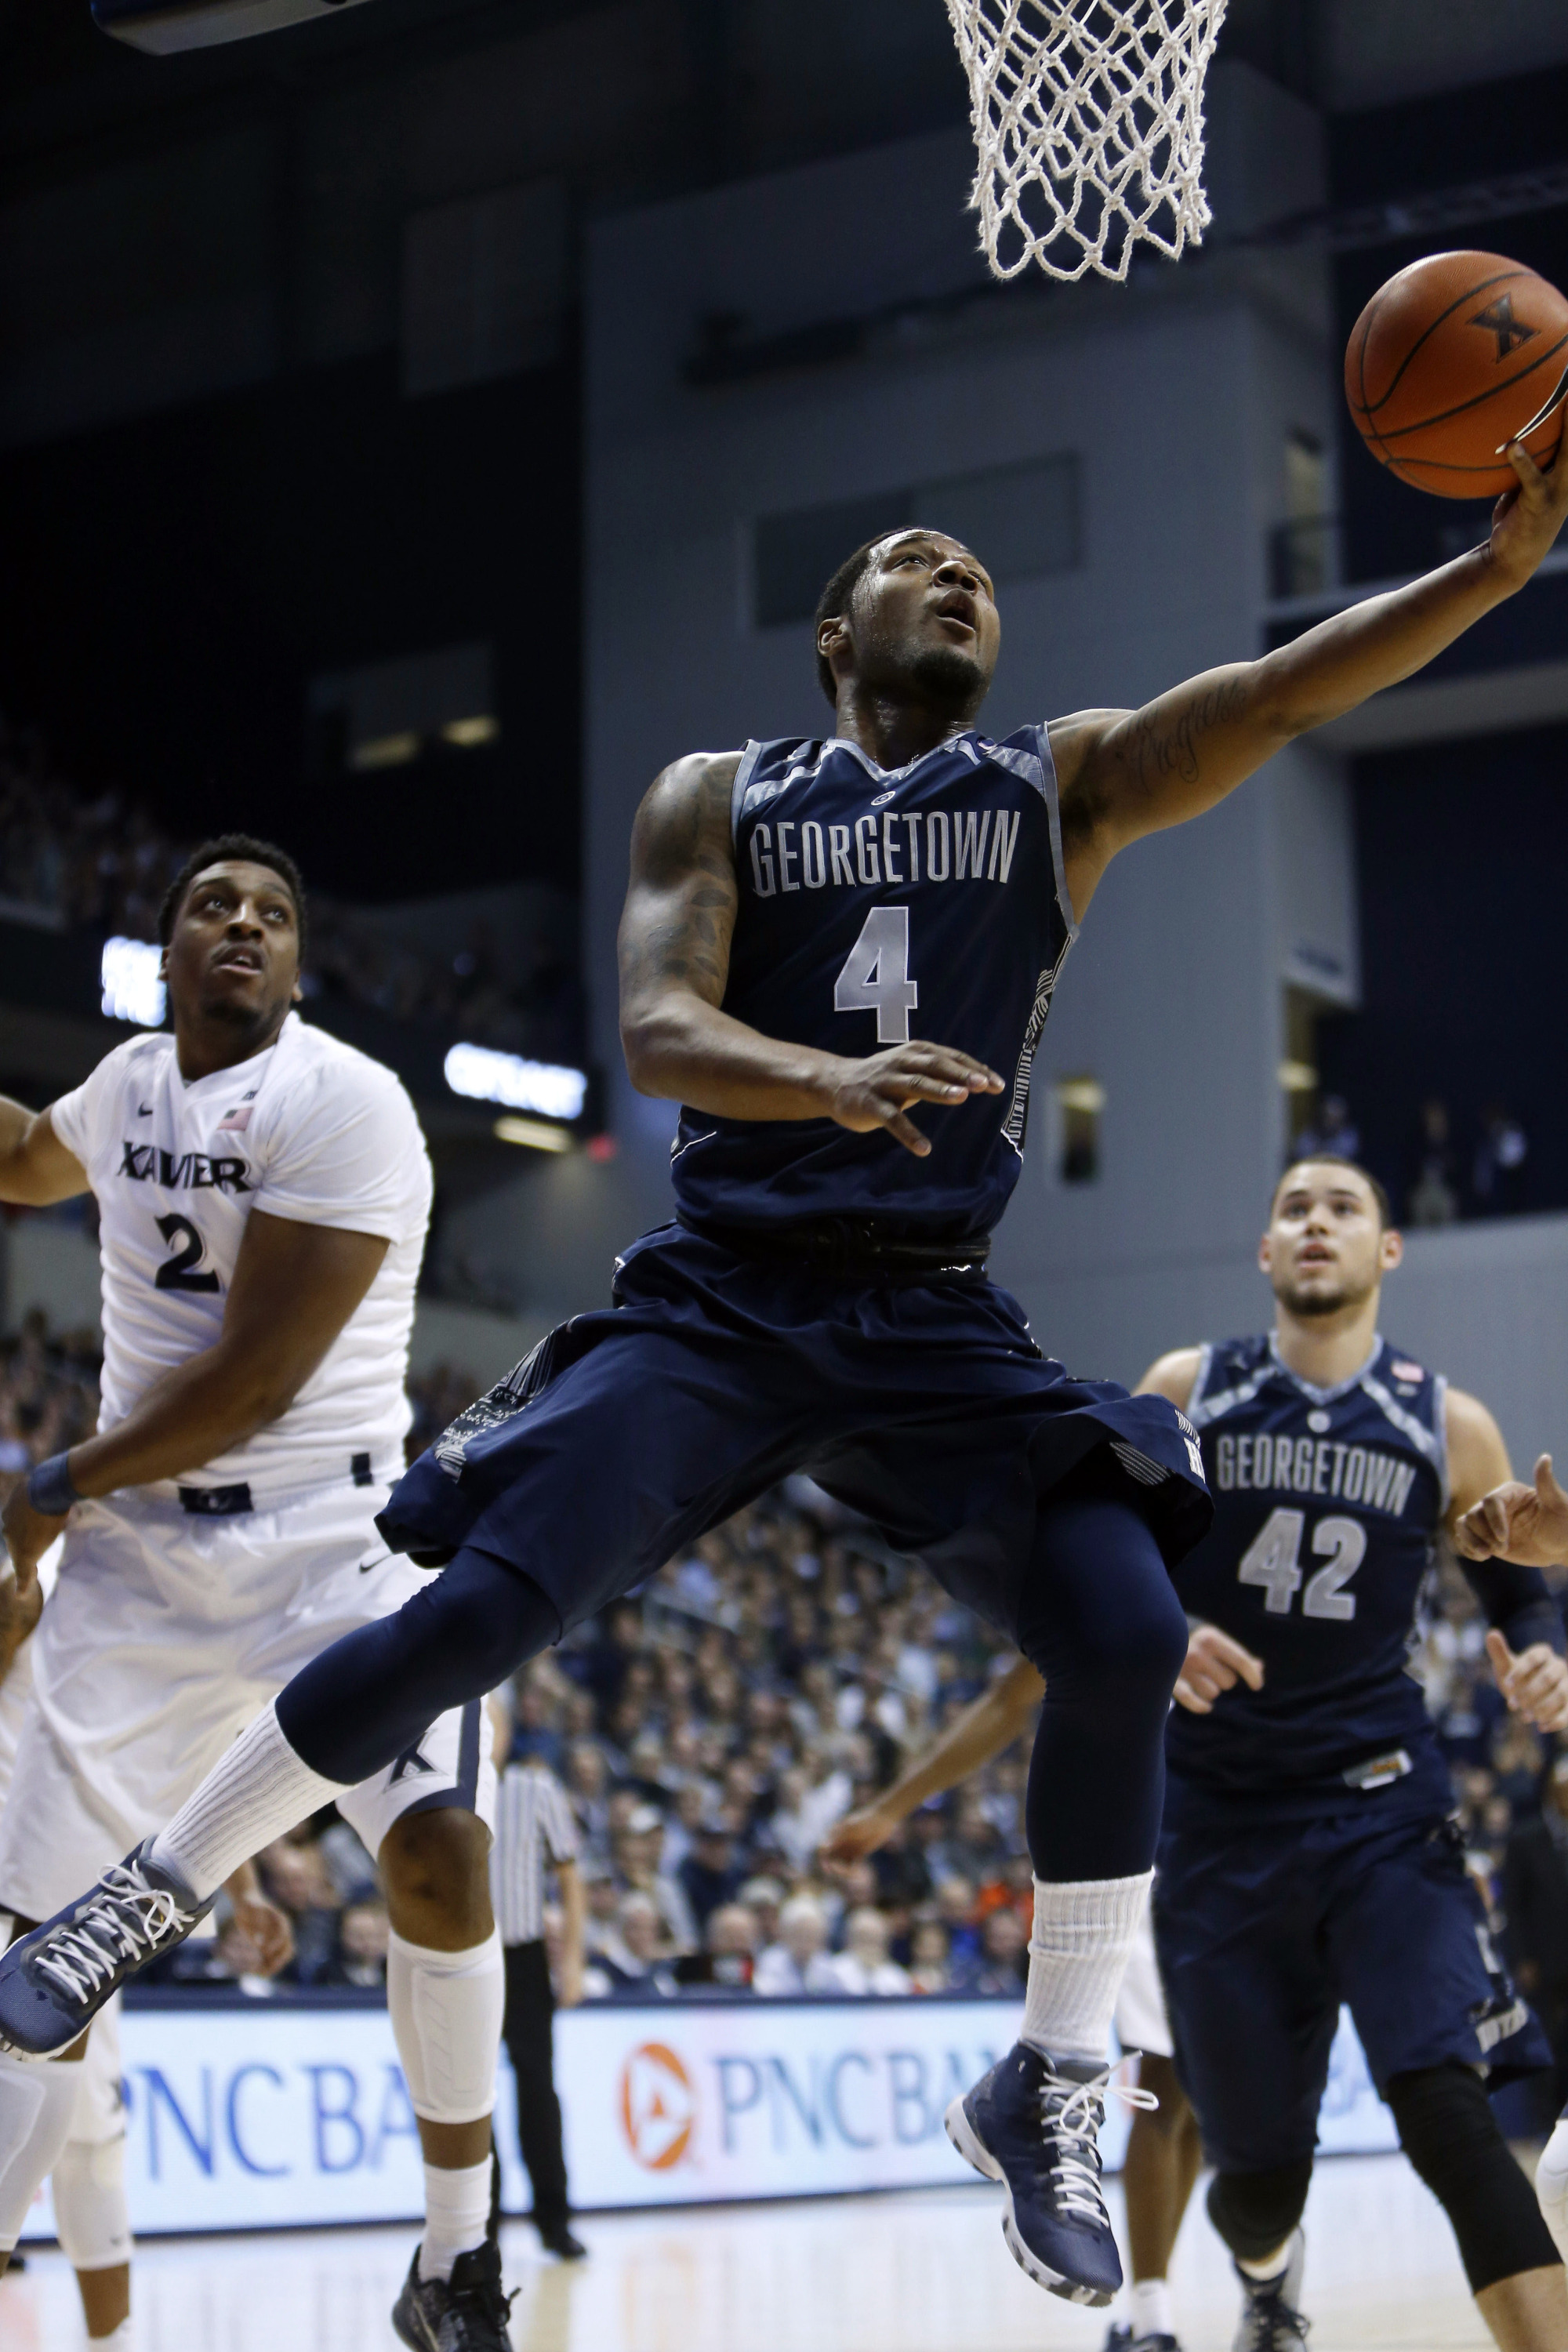 The winter storm that hit much of the East Coast over the weekend didn't prevent the Georgetown men's basketball team from preparing for it next game, as the Hoyas host BIG EAST Conference rival Creighton on Tuesday, Jan. 26.  Tipoff at Verizon Center is slated for 6:30 p.m.